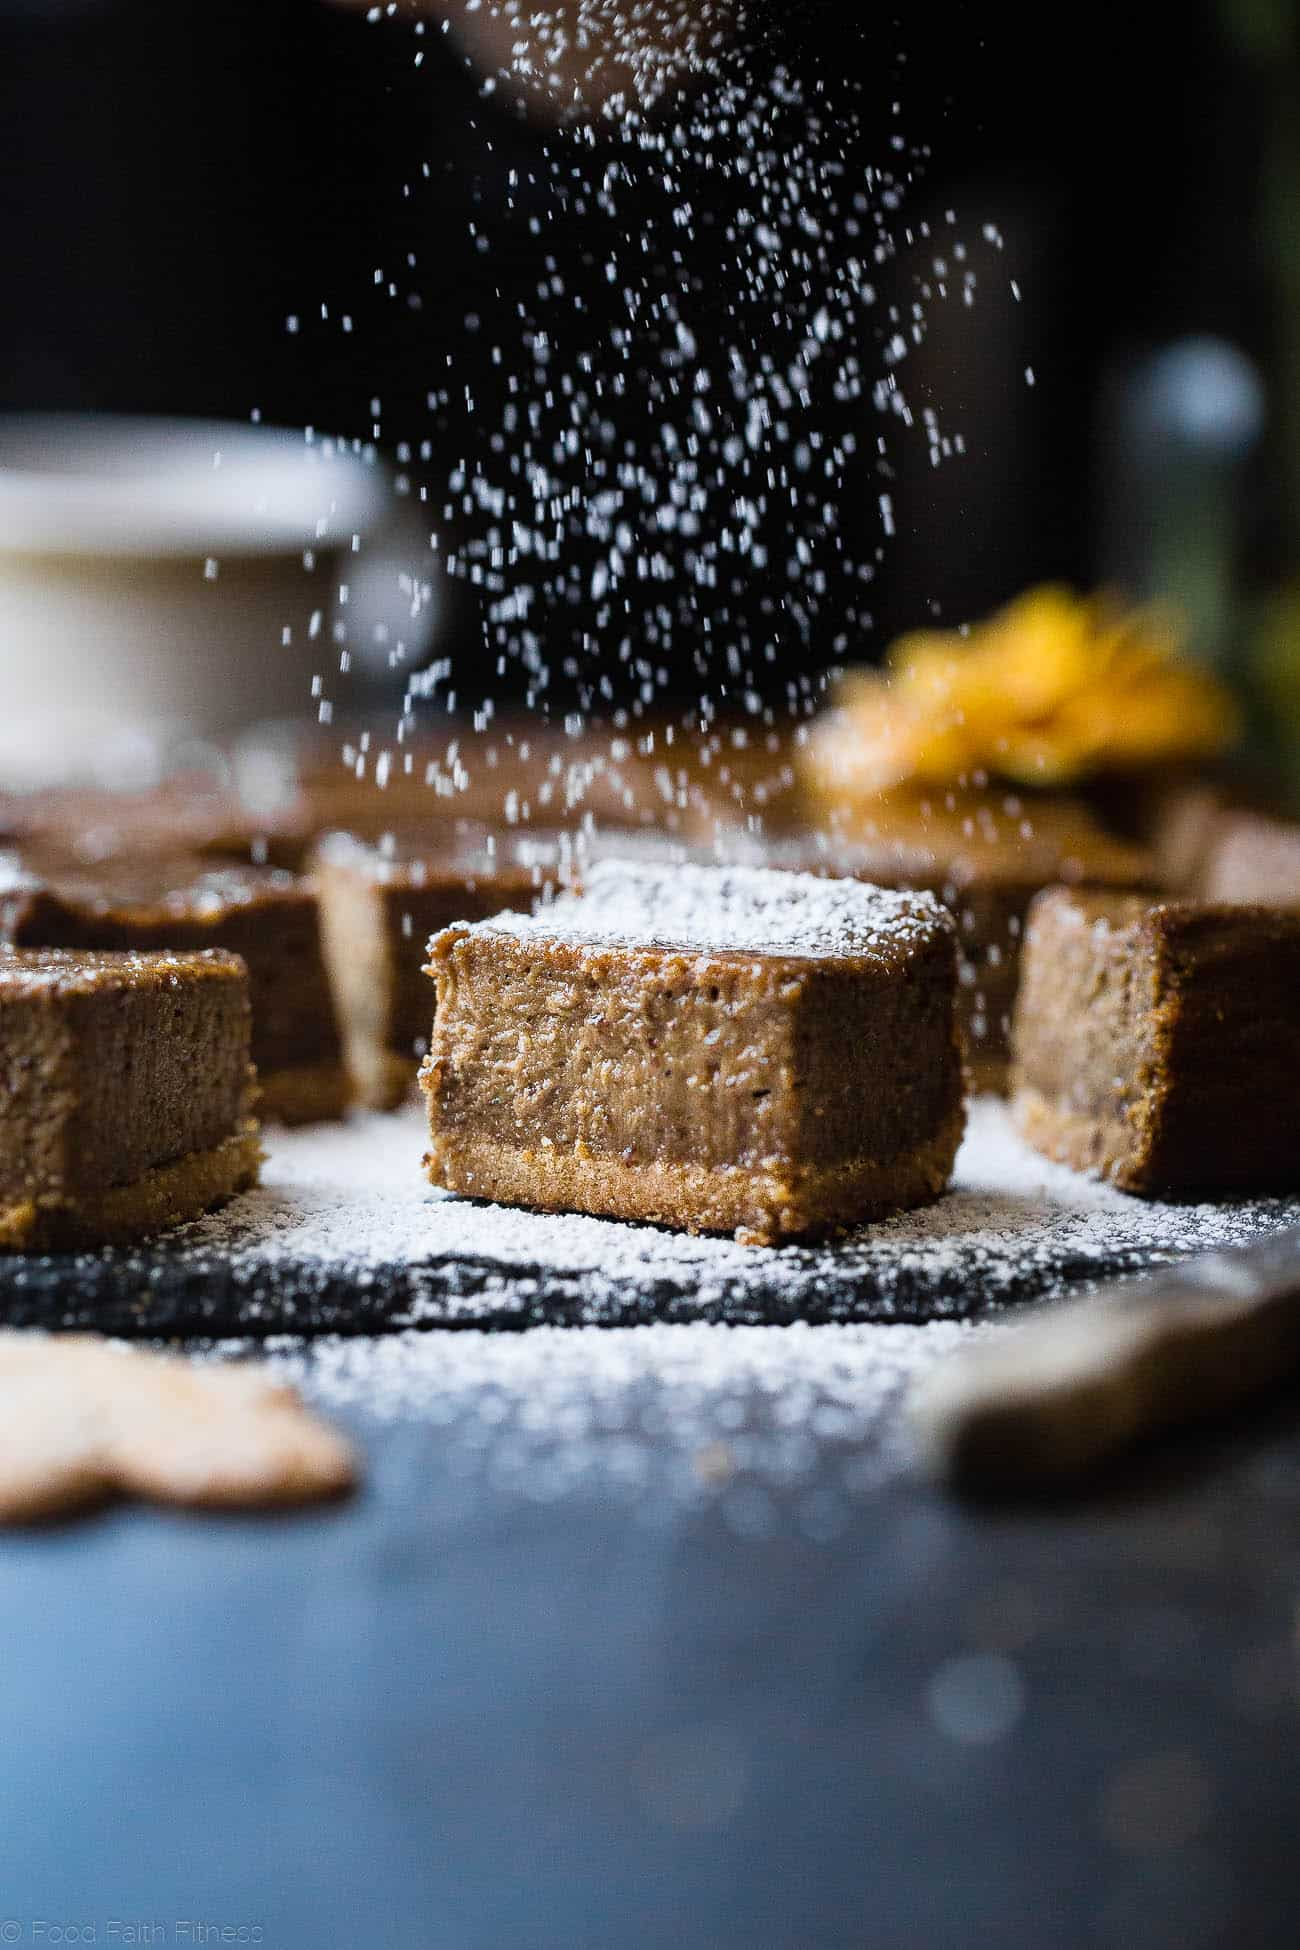 Gingerbread Dairy Free Paleo Cheesecake Bars - These little bites of gingerbread bliss are SO creamy and spicy-sweet! A paleo friendly, healthy and gluten free dessert for the holidays that you will never believe is dairy and egg free!  | Foodfaithfitness.com | @FoodFaithFit